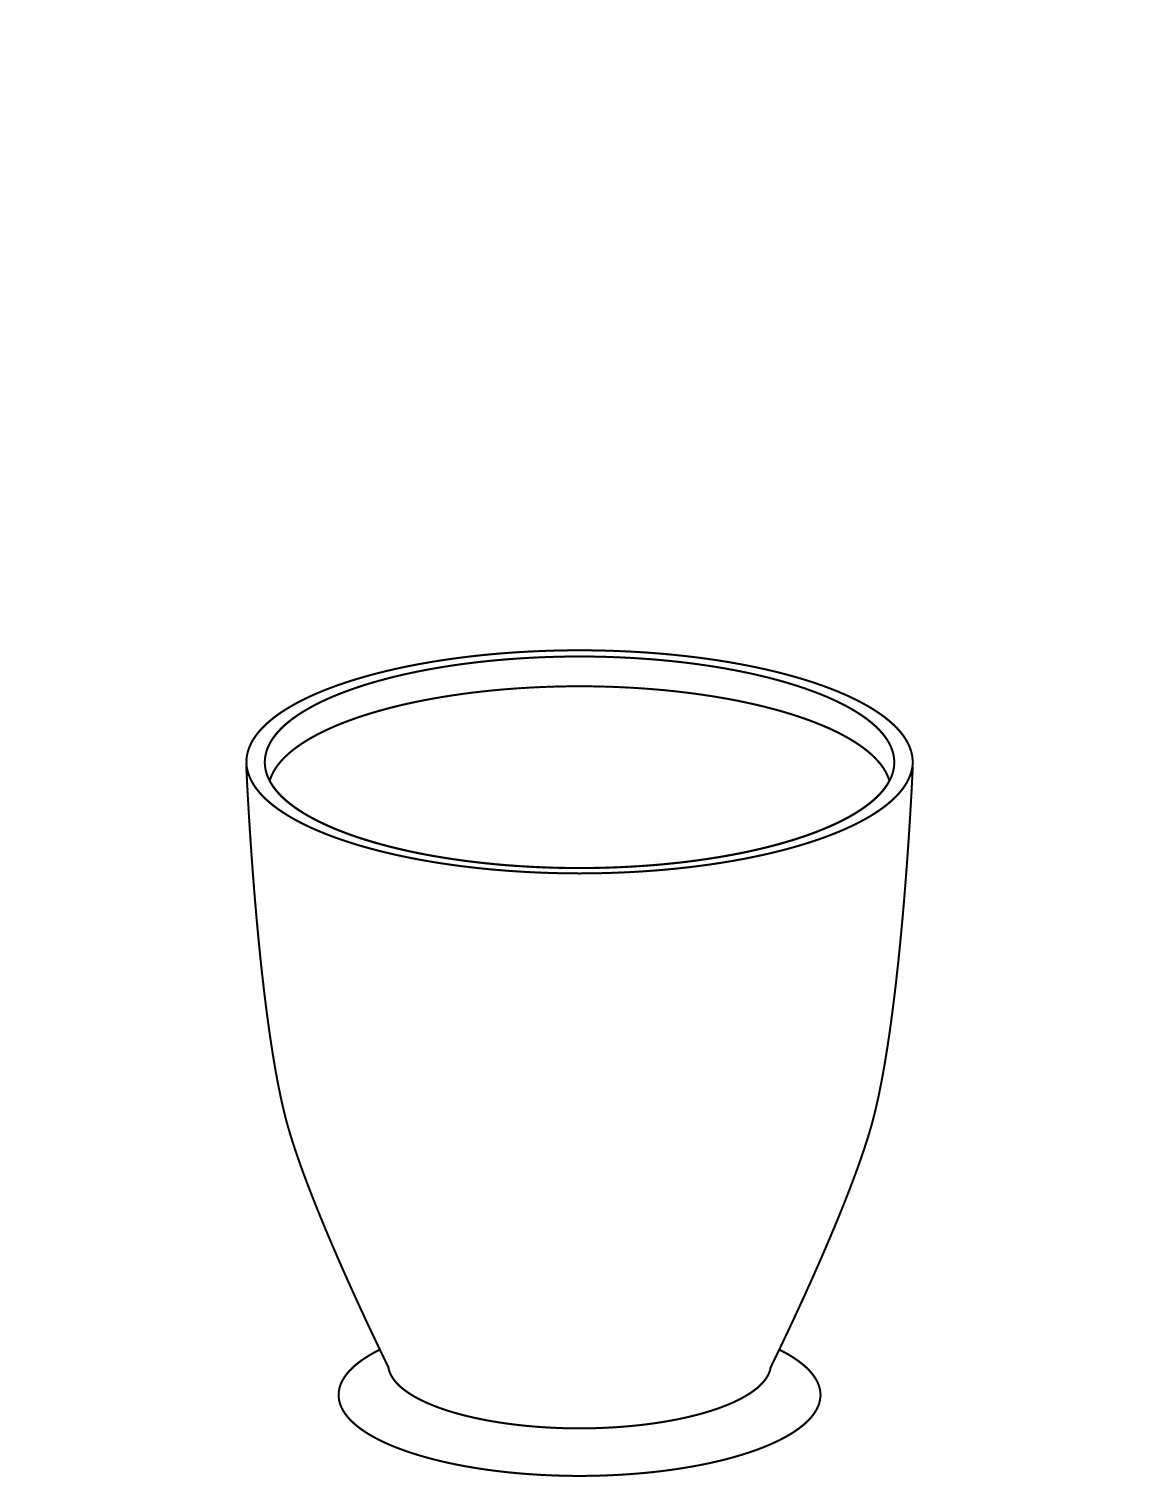 Pot Coloring Pages To Download And Print For Free